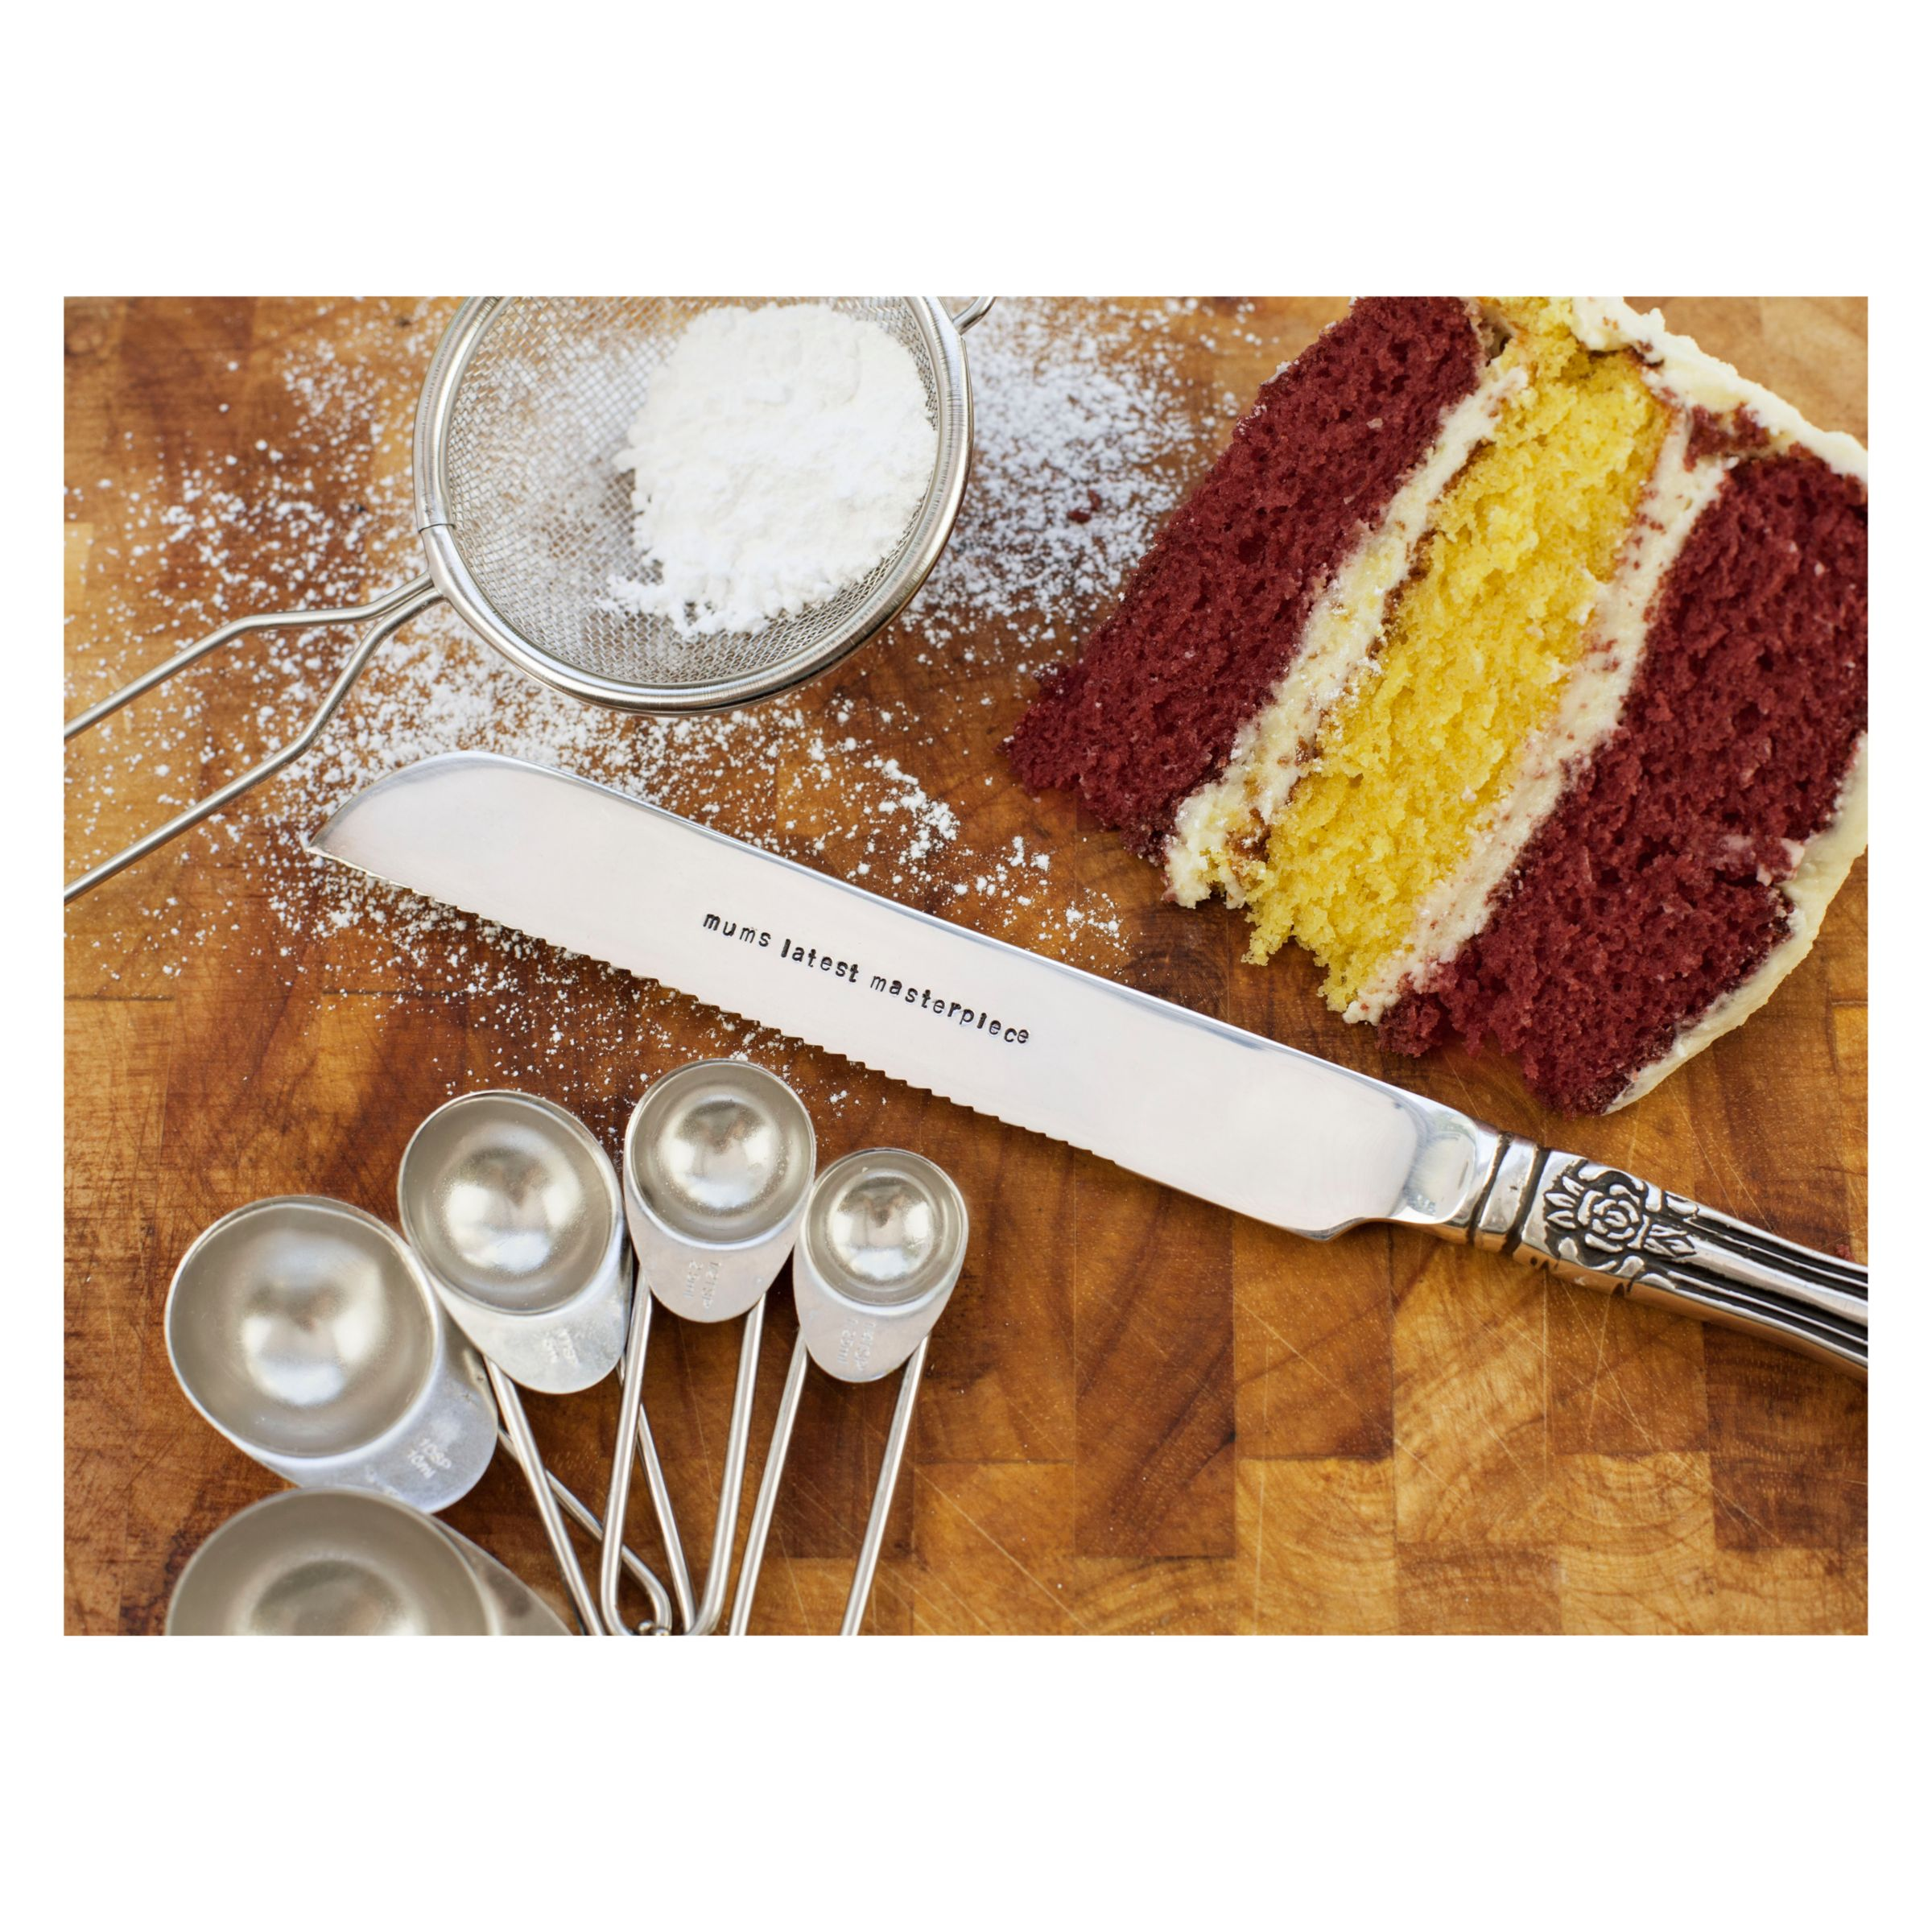 Cutlery Commission Cutlery Commission Silver-Plated Personalised Cake Knife